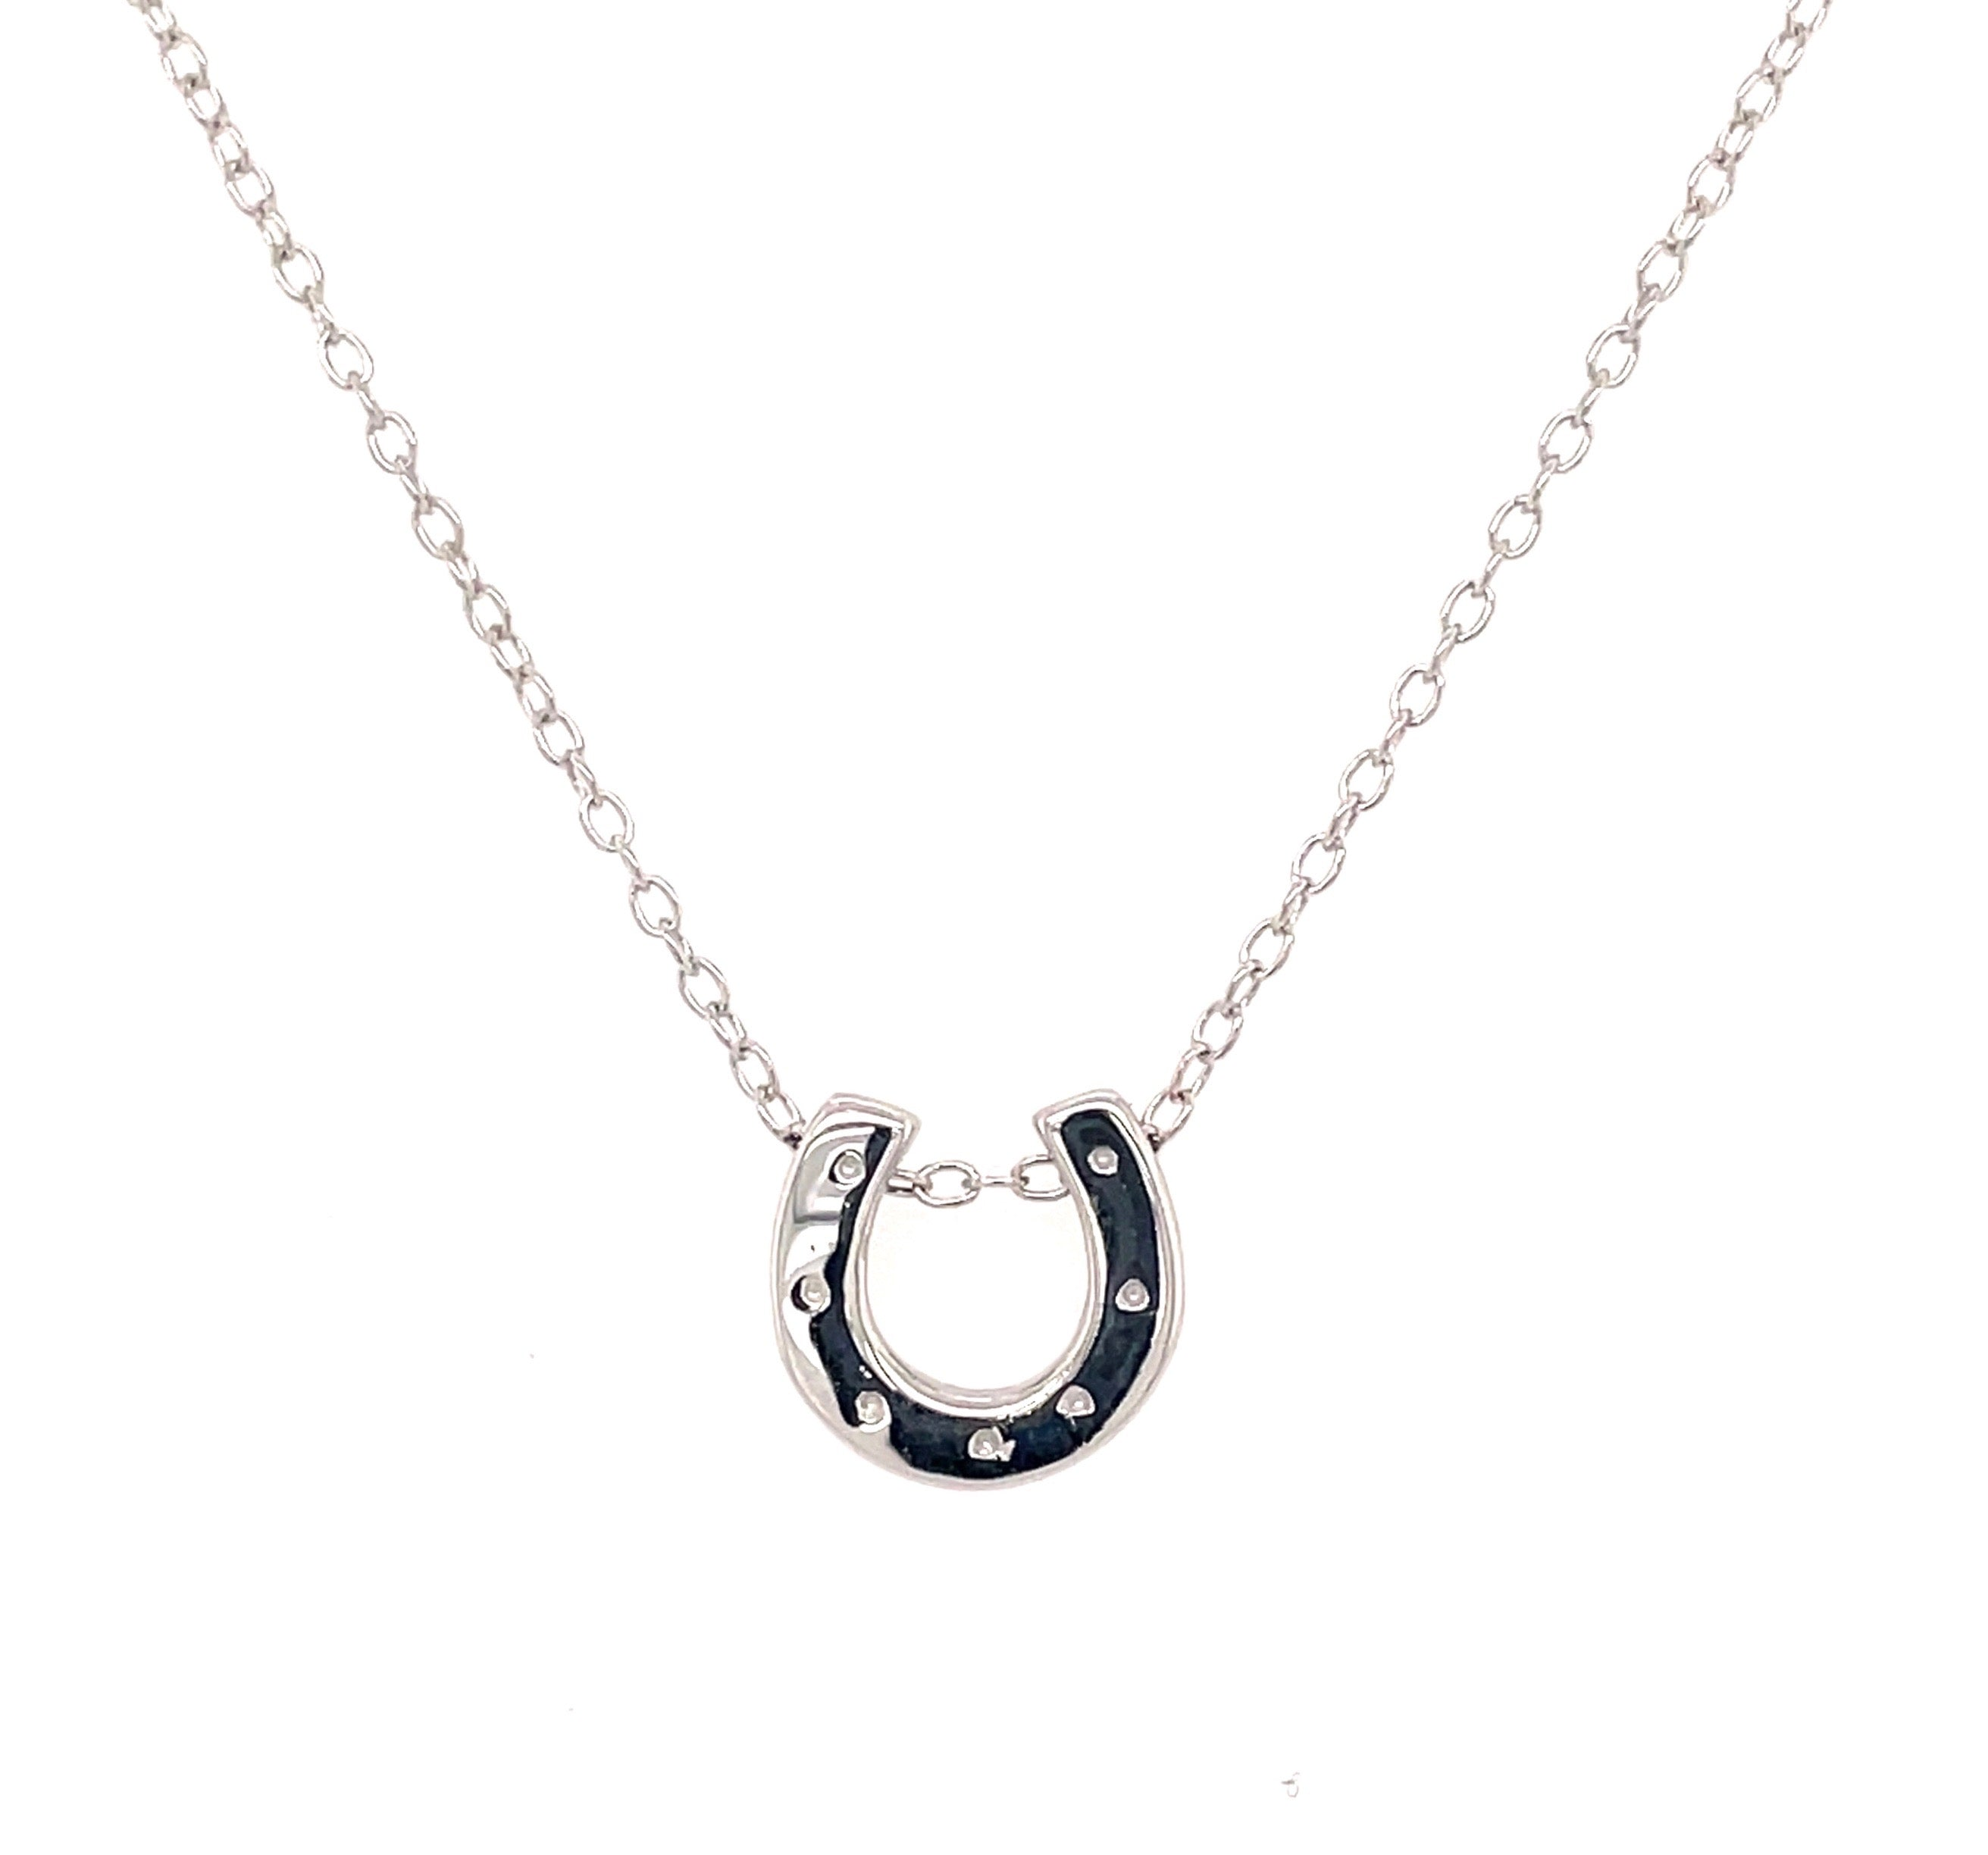 Horseshoe necklace with nail holes sterling silver